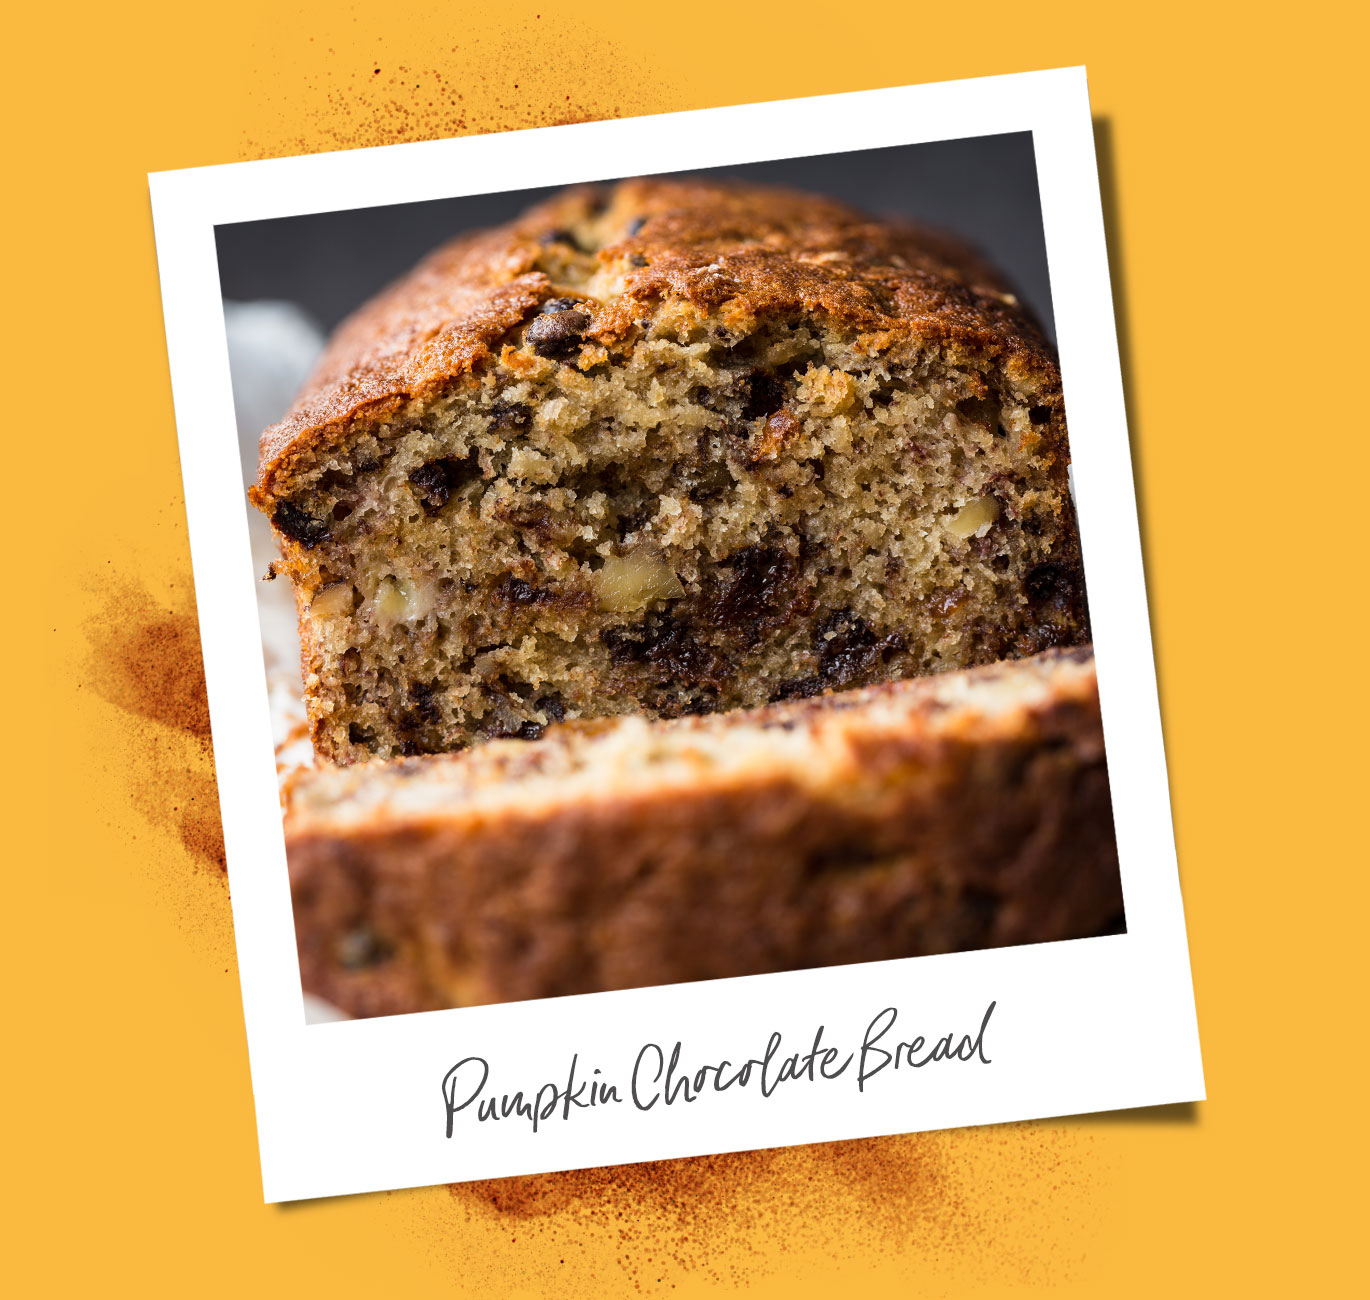 Pumpkin Chocolate Bread recipe polaroid